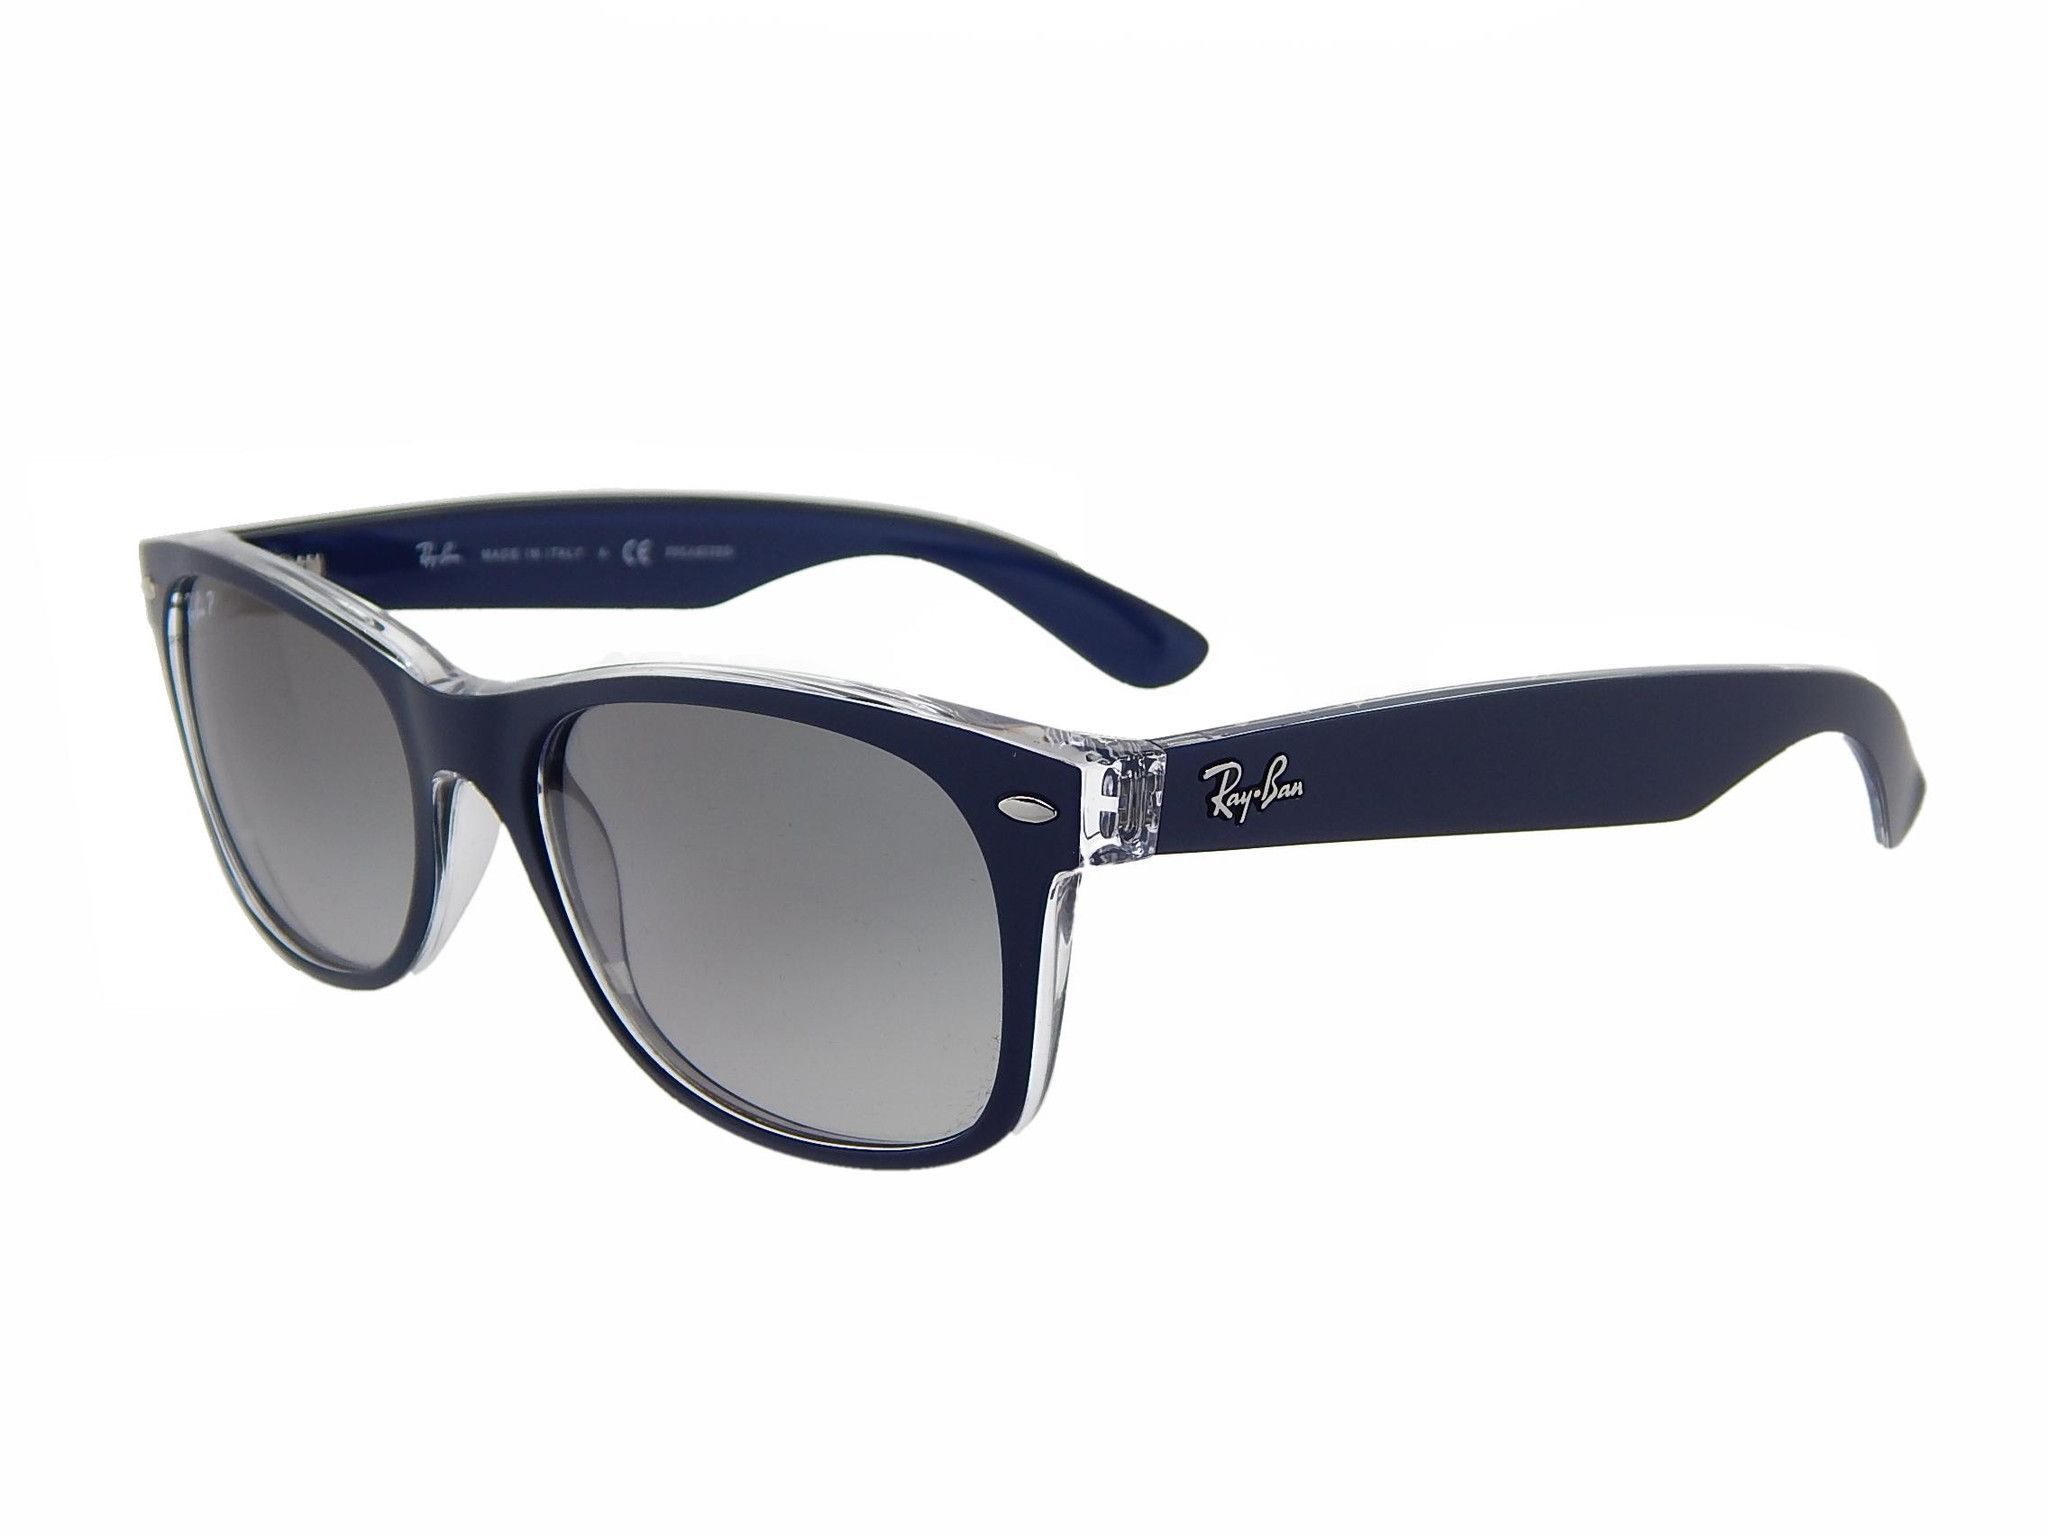 Ray-Ban Unisex Sonnenbrille New Wayfarer Polarized, Gr. 55 mm, Blau (Transparent), RB 2132 55 6053M3